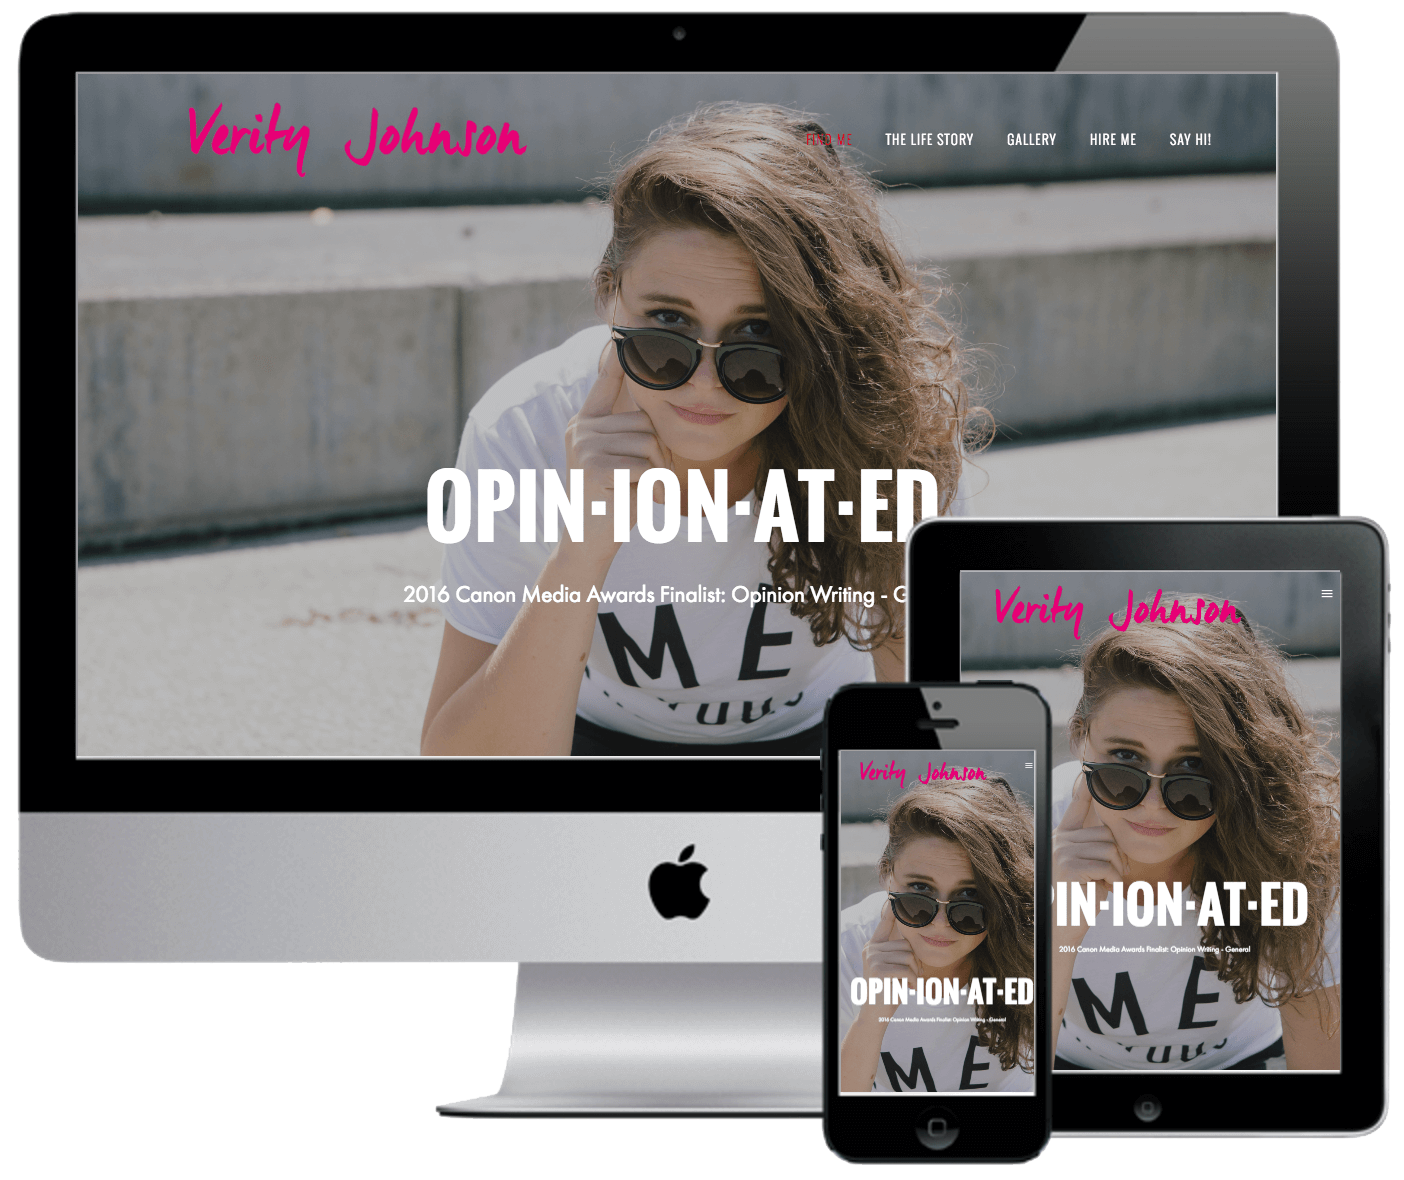 Branded Website - The final product we created was a fully-responsive personal website, which showcases Verity's creative work in a way that immediately communicates her unique brand and value proposition to any visitor. Check it out and get to know Verity Johnson here.